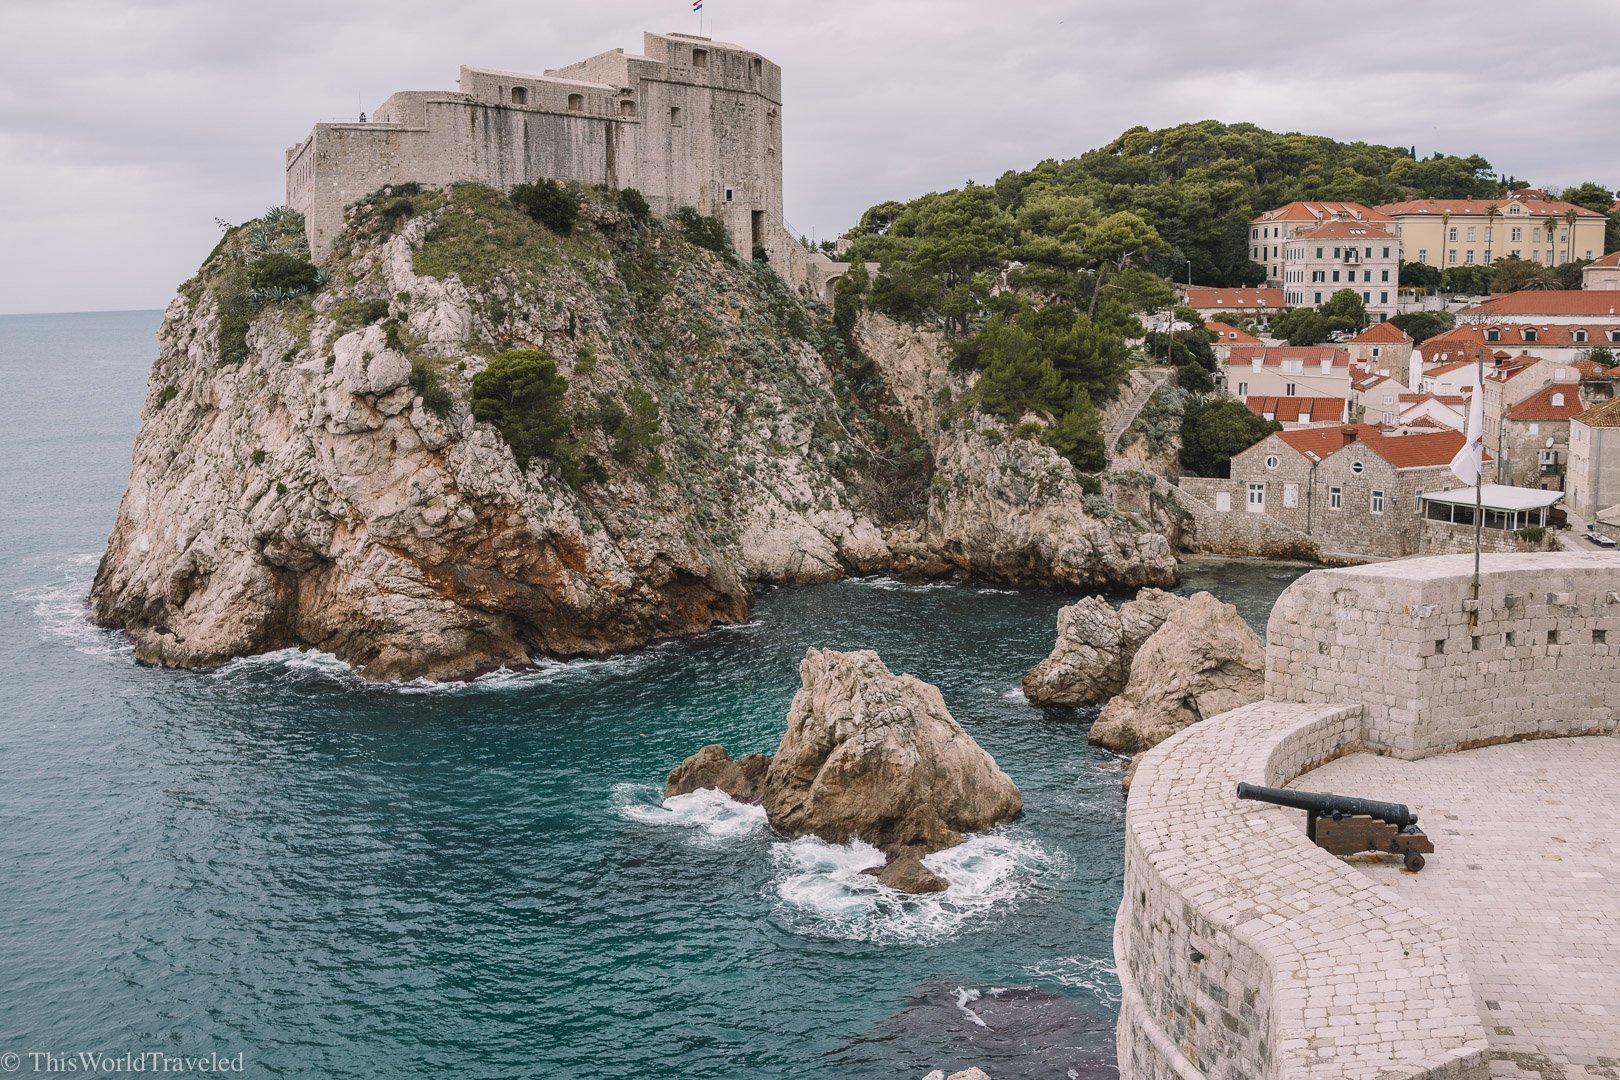 View of Dubrovnik in Croatia from walking the city walls